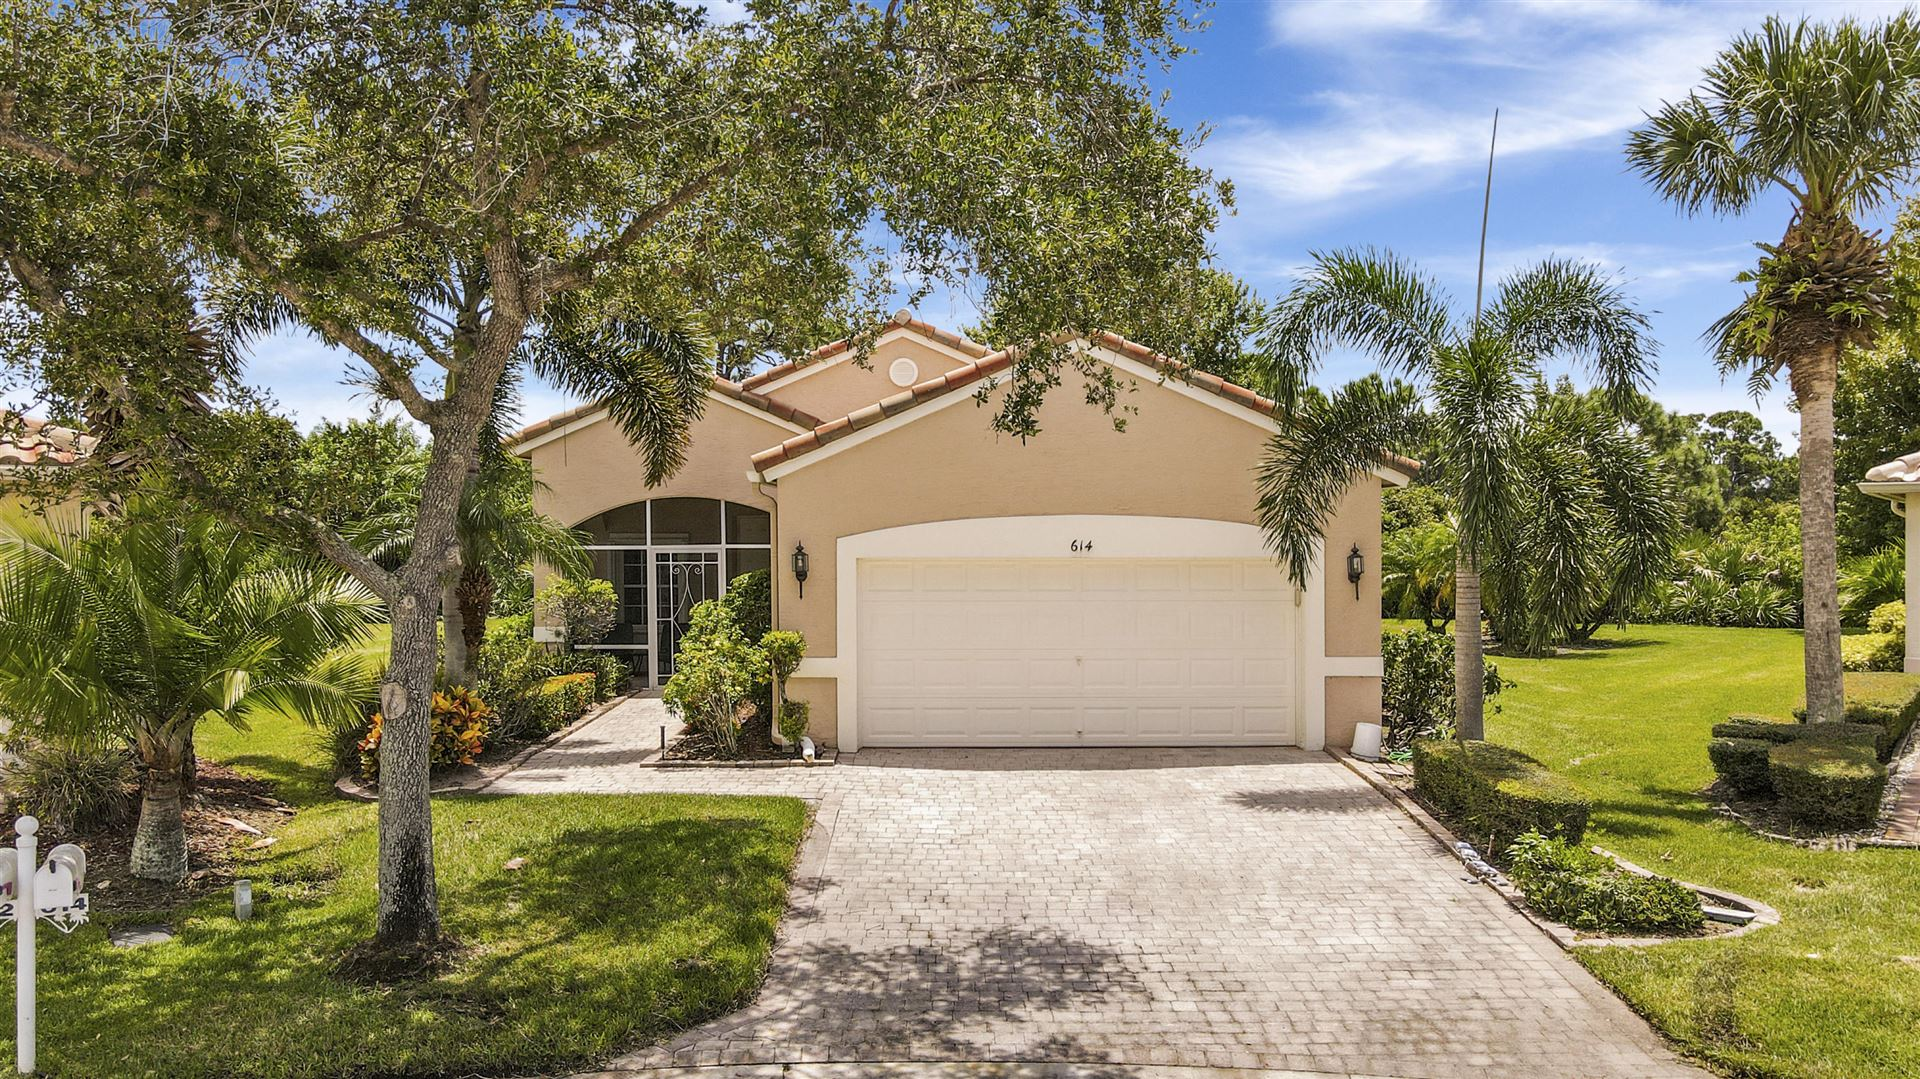 Photo of 614 NW Whitfield Way, Port Saint Lucie, FL 34986 (MLS # RX-10645387)